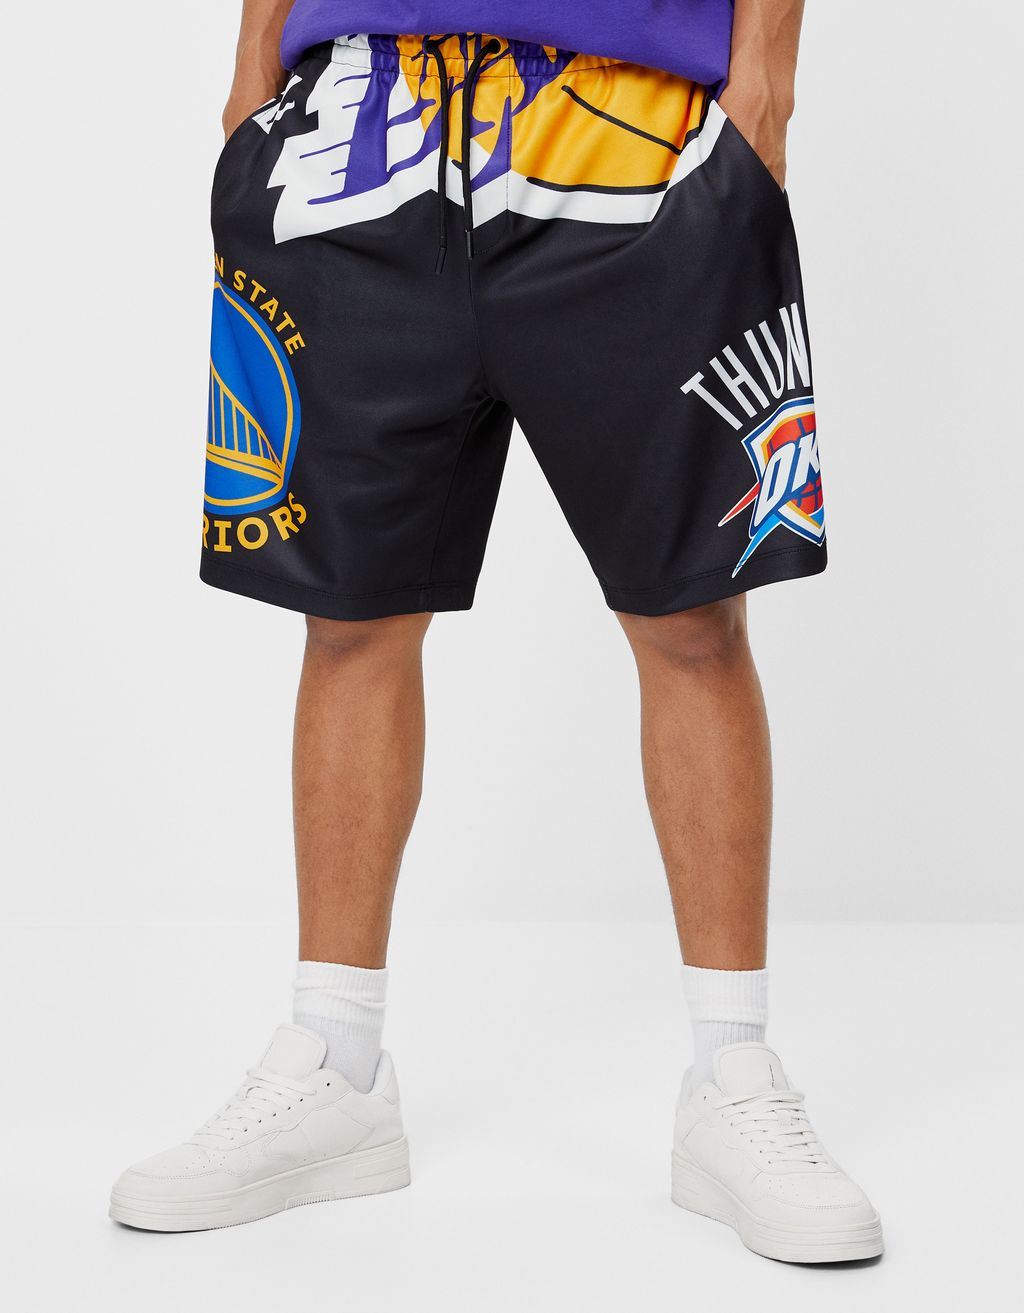 NBA Bermuda jogging shorts